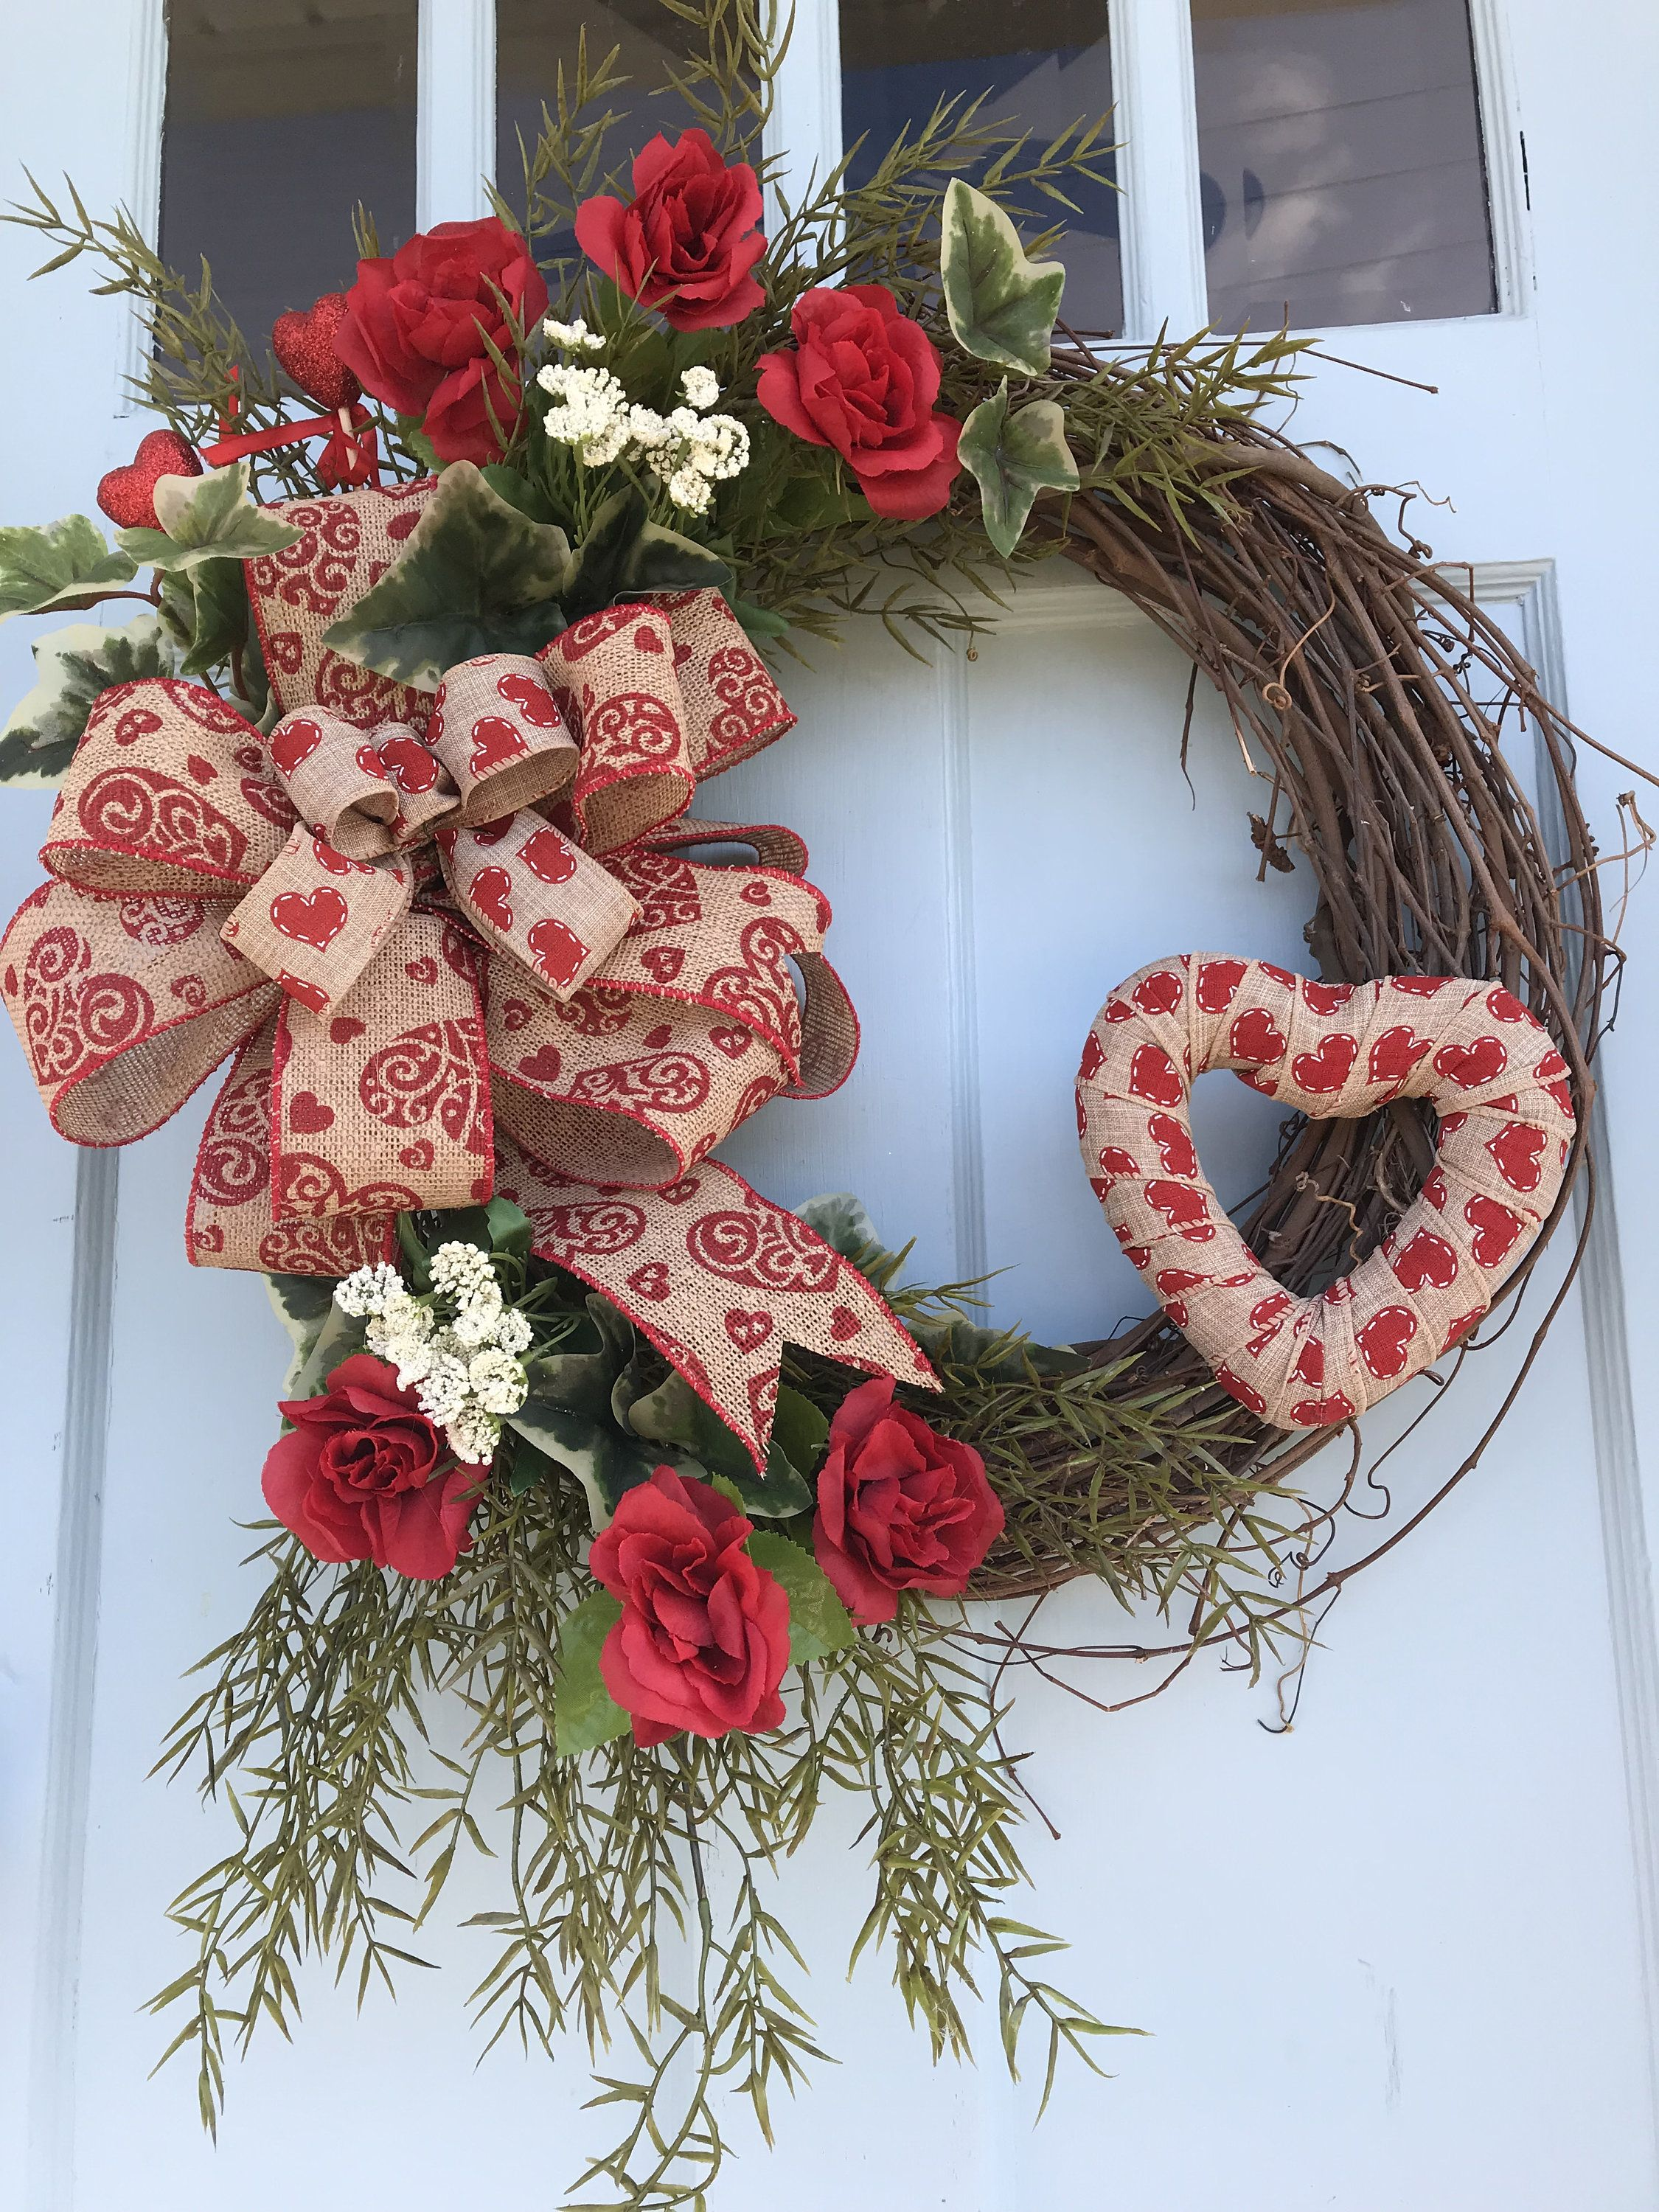 Heart Valentine Wreath Wreaths For Front Door Everyday Grapevine Spring Summer Farmhouse Primitive Year Long Wreaths In 2020 With Images Valentine Wreath Diy Valentine Door Decorations Valentines Day Decorations